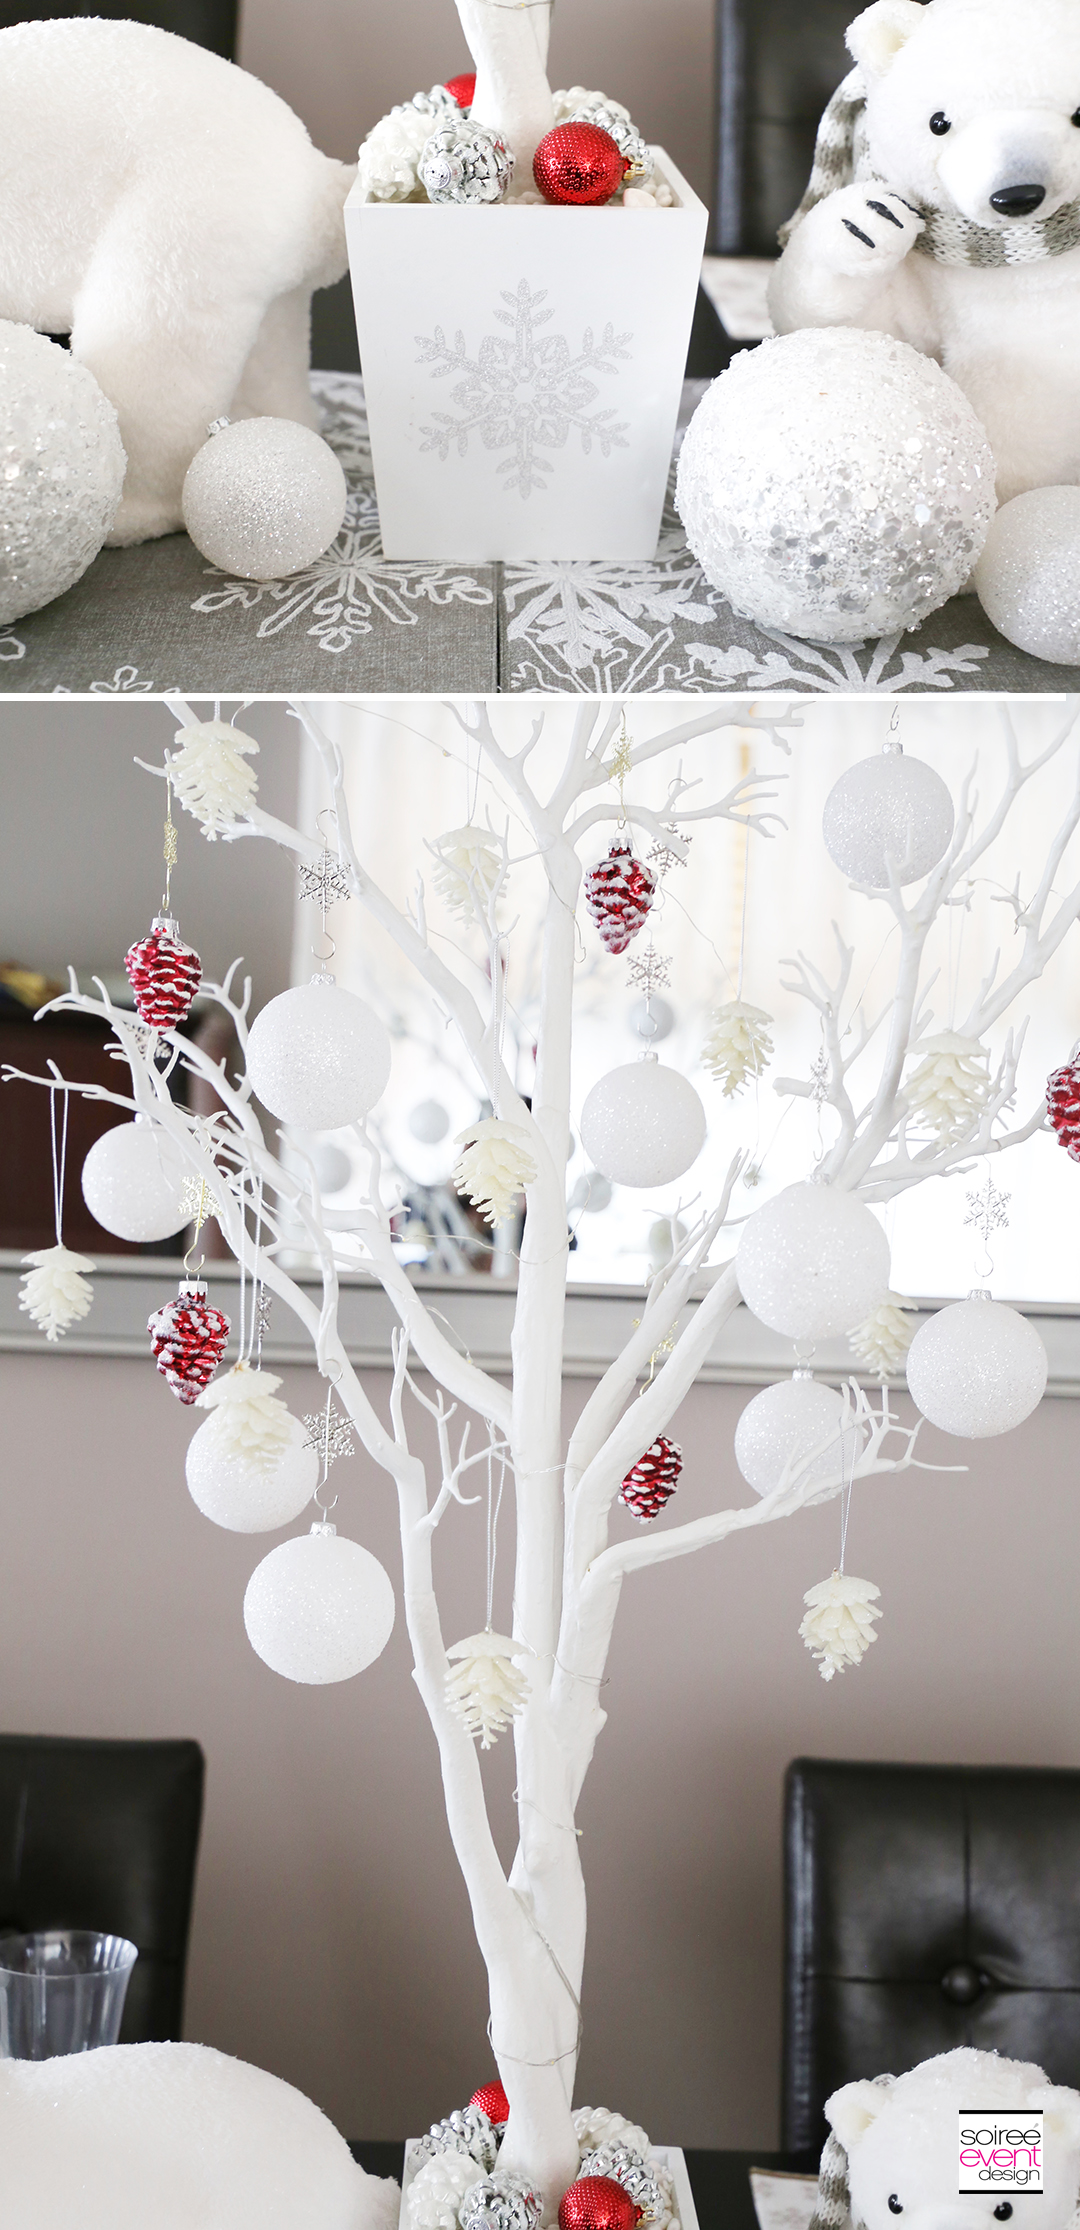 Personalized Christmas Tablescapes - White tree